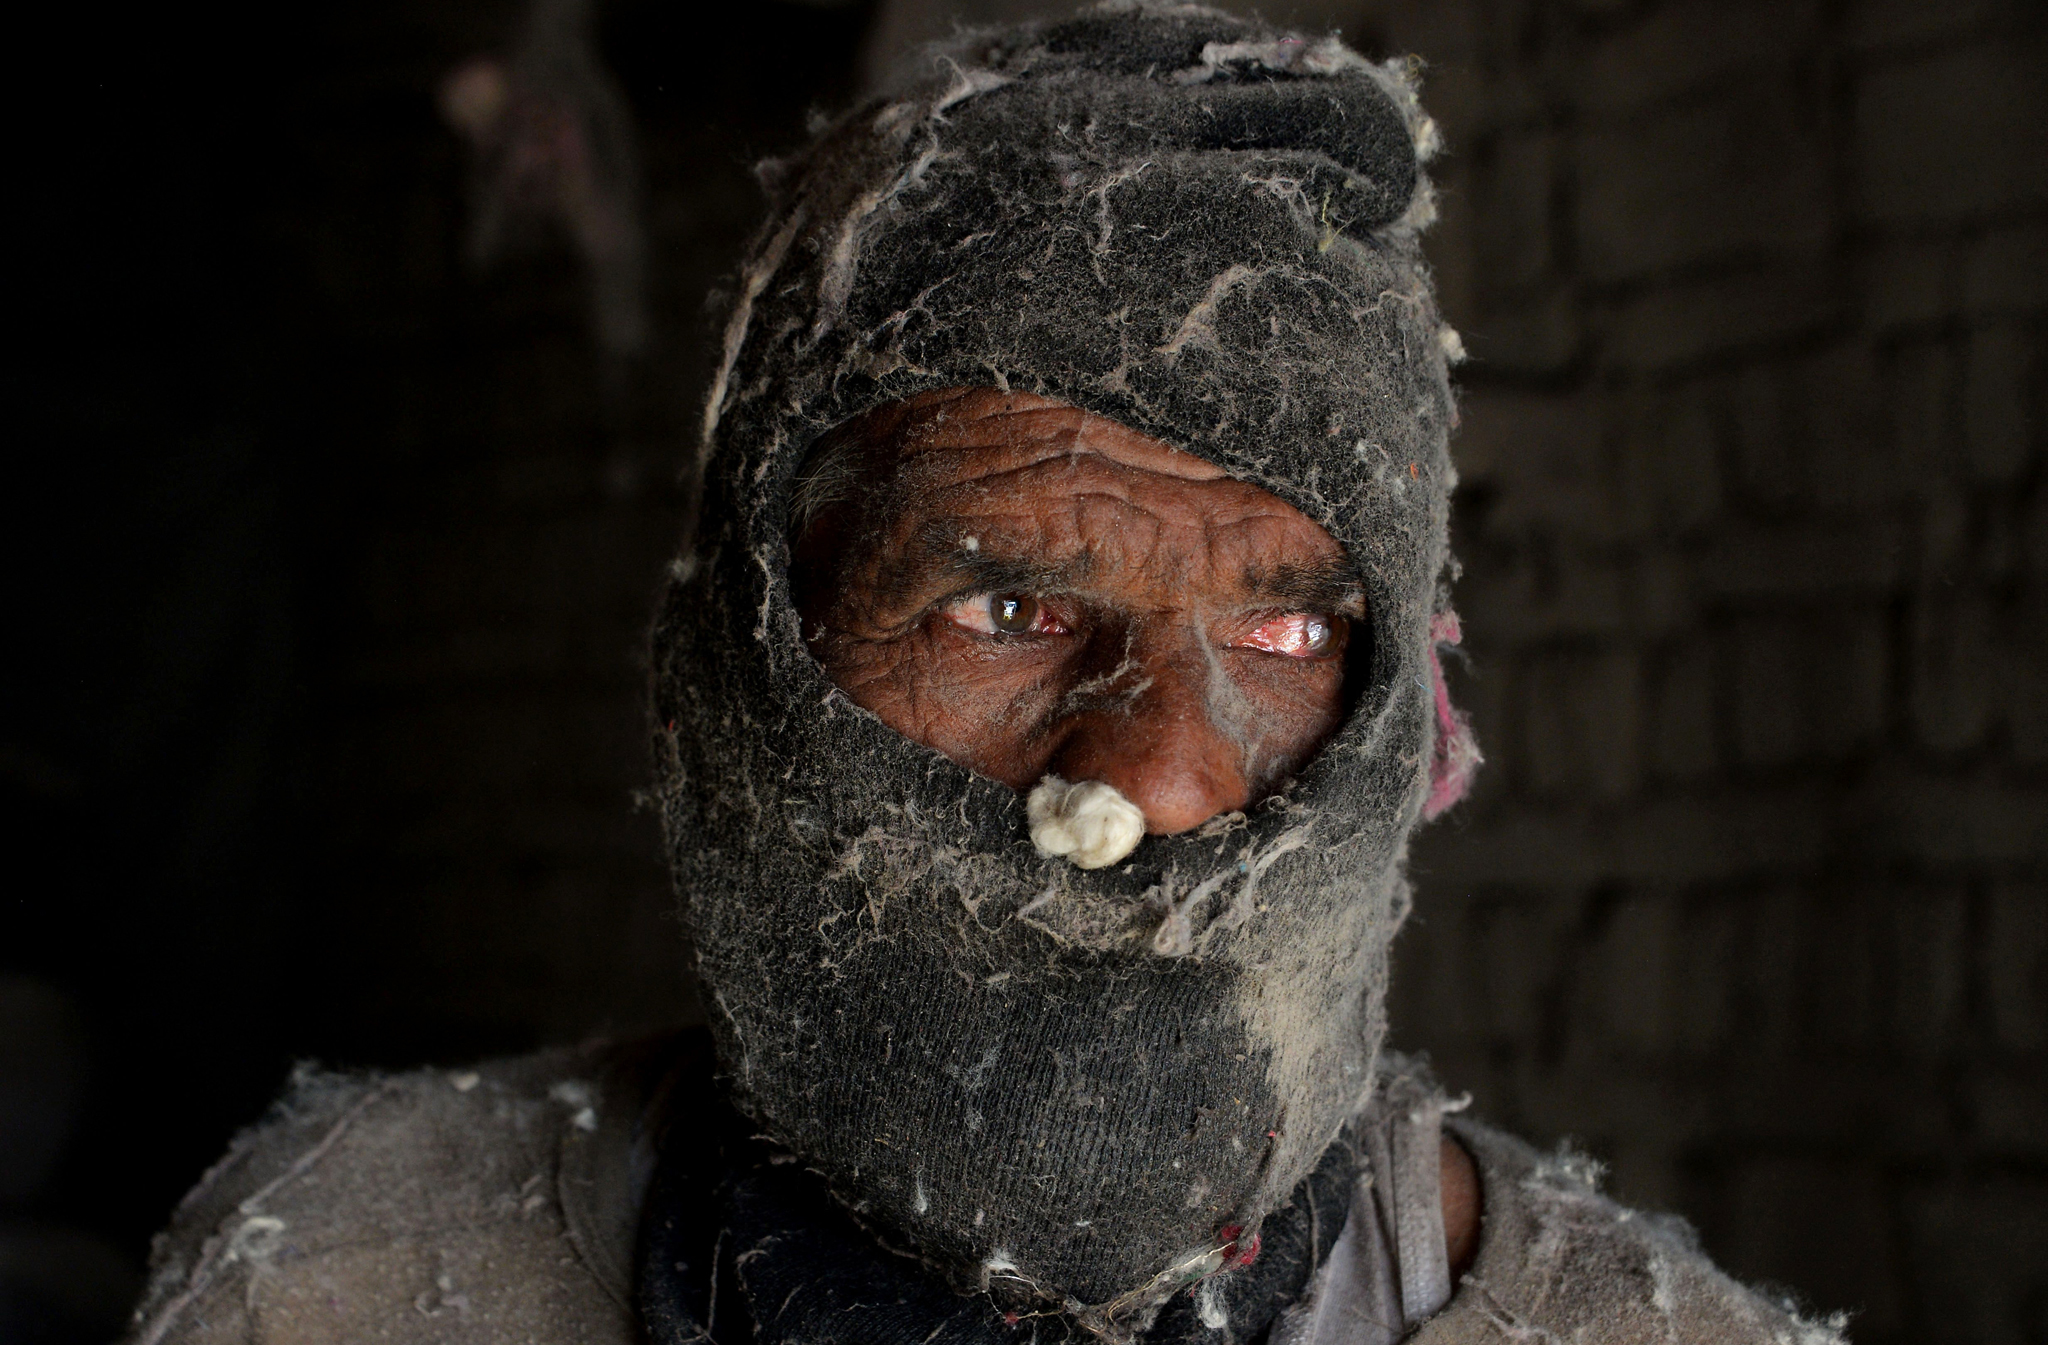 TOPSHOT - An Afghan labourer looks on as he works at a traditional cotton factory in Jalalabad on July 31, 2016. / AFP